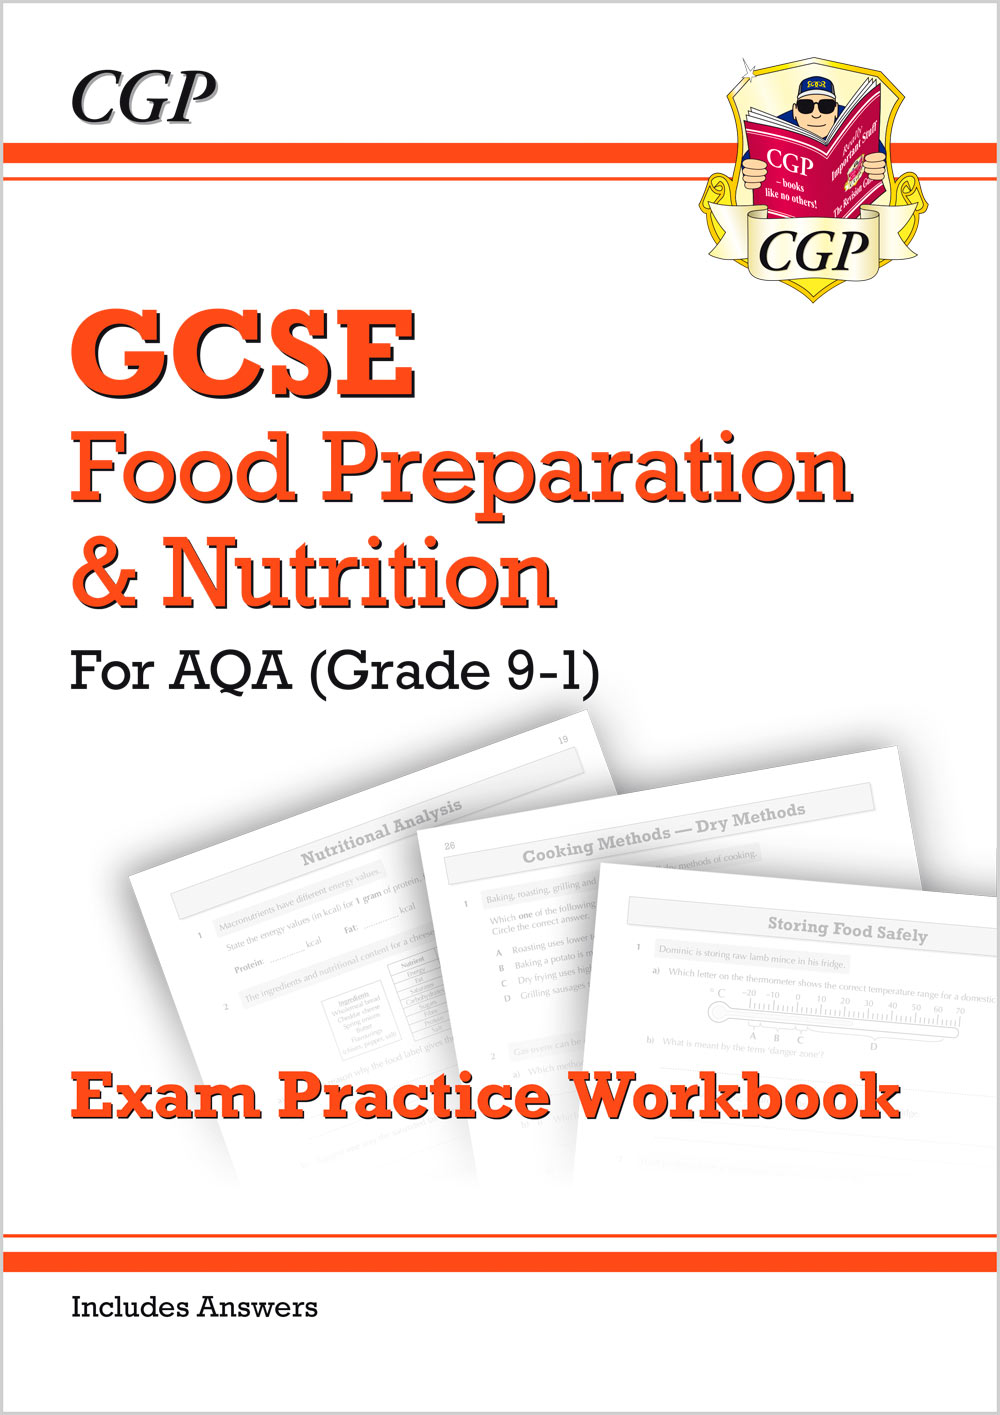 FNAQ41 - Grade 9-1 GCSE Food Preparation & Nutrition - AQA Exam Practice Workbook (includes Answers)